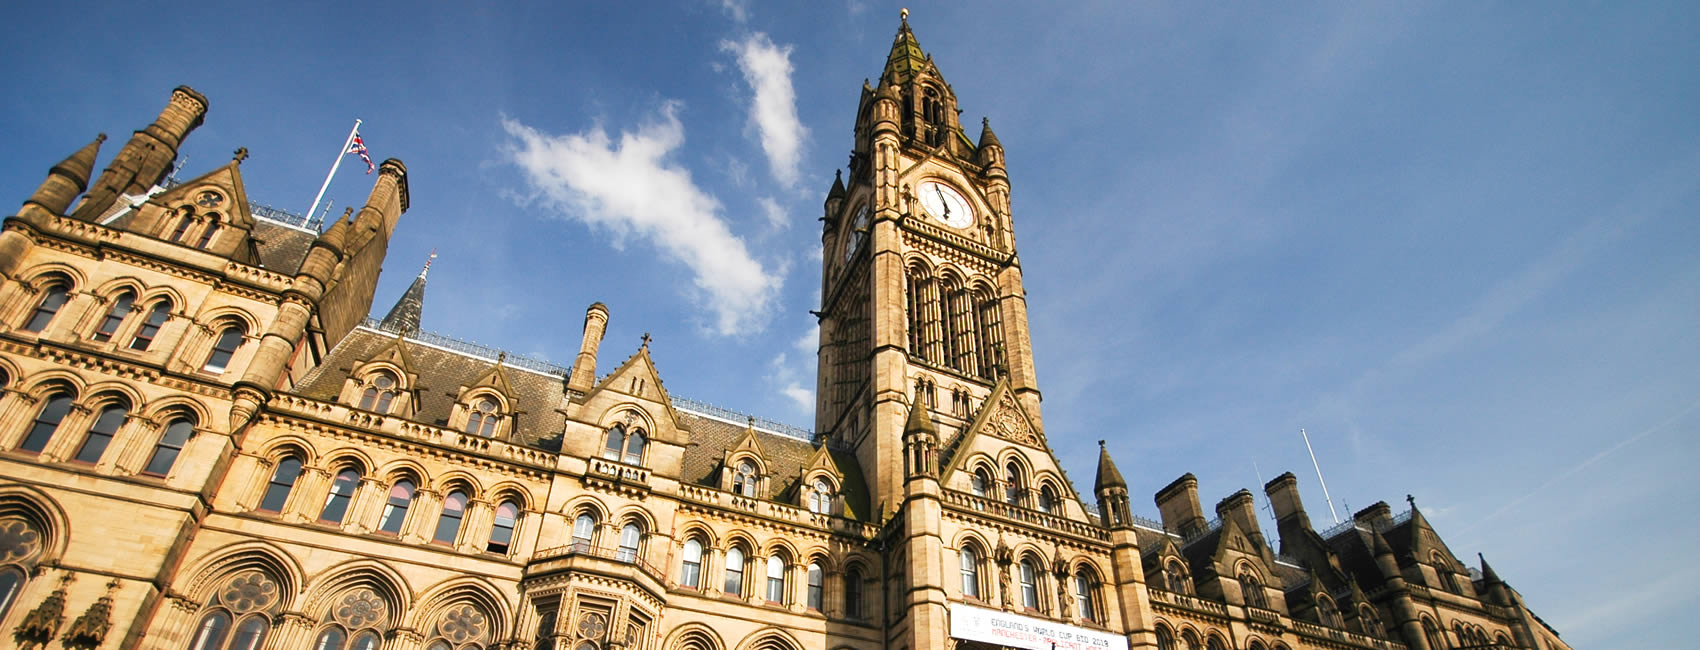 the city hall in central Manchester